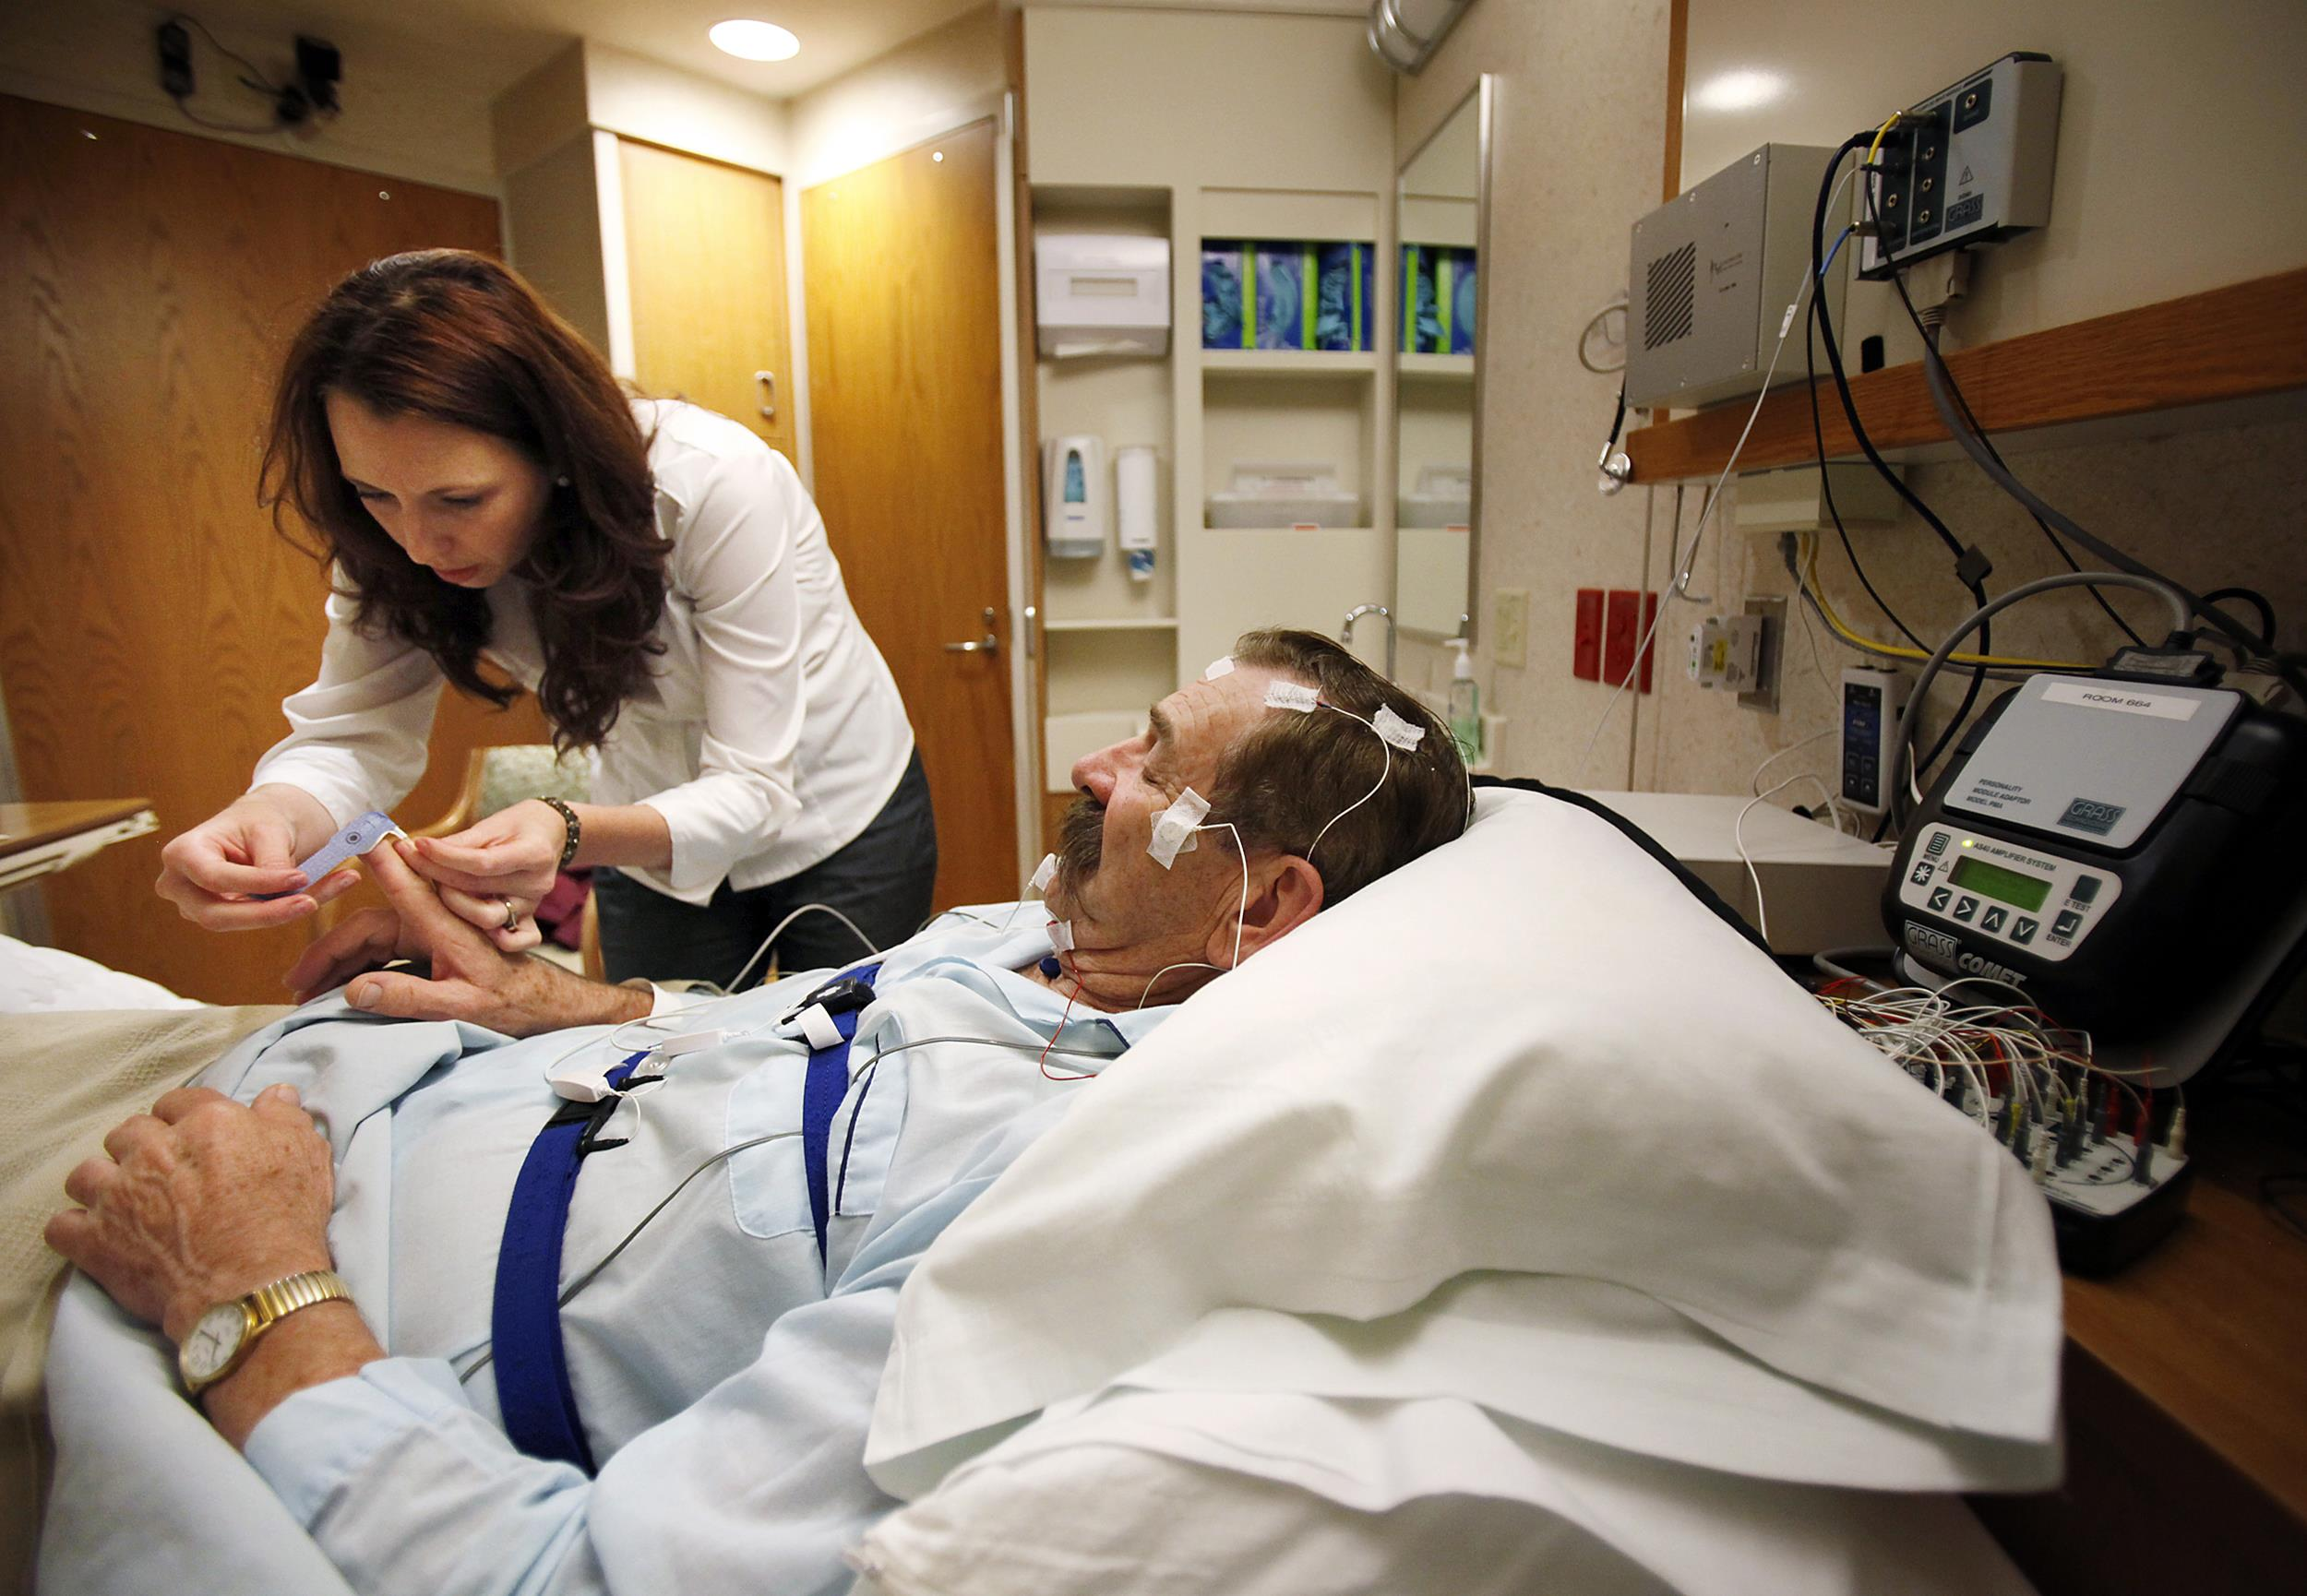 Image: Amanda Rasmuson prepares Chisholm for an overnight sleep evaluation for a sleep study at UW Hospital's Clinics in Madison, Wis.